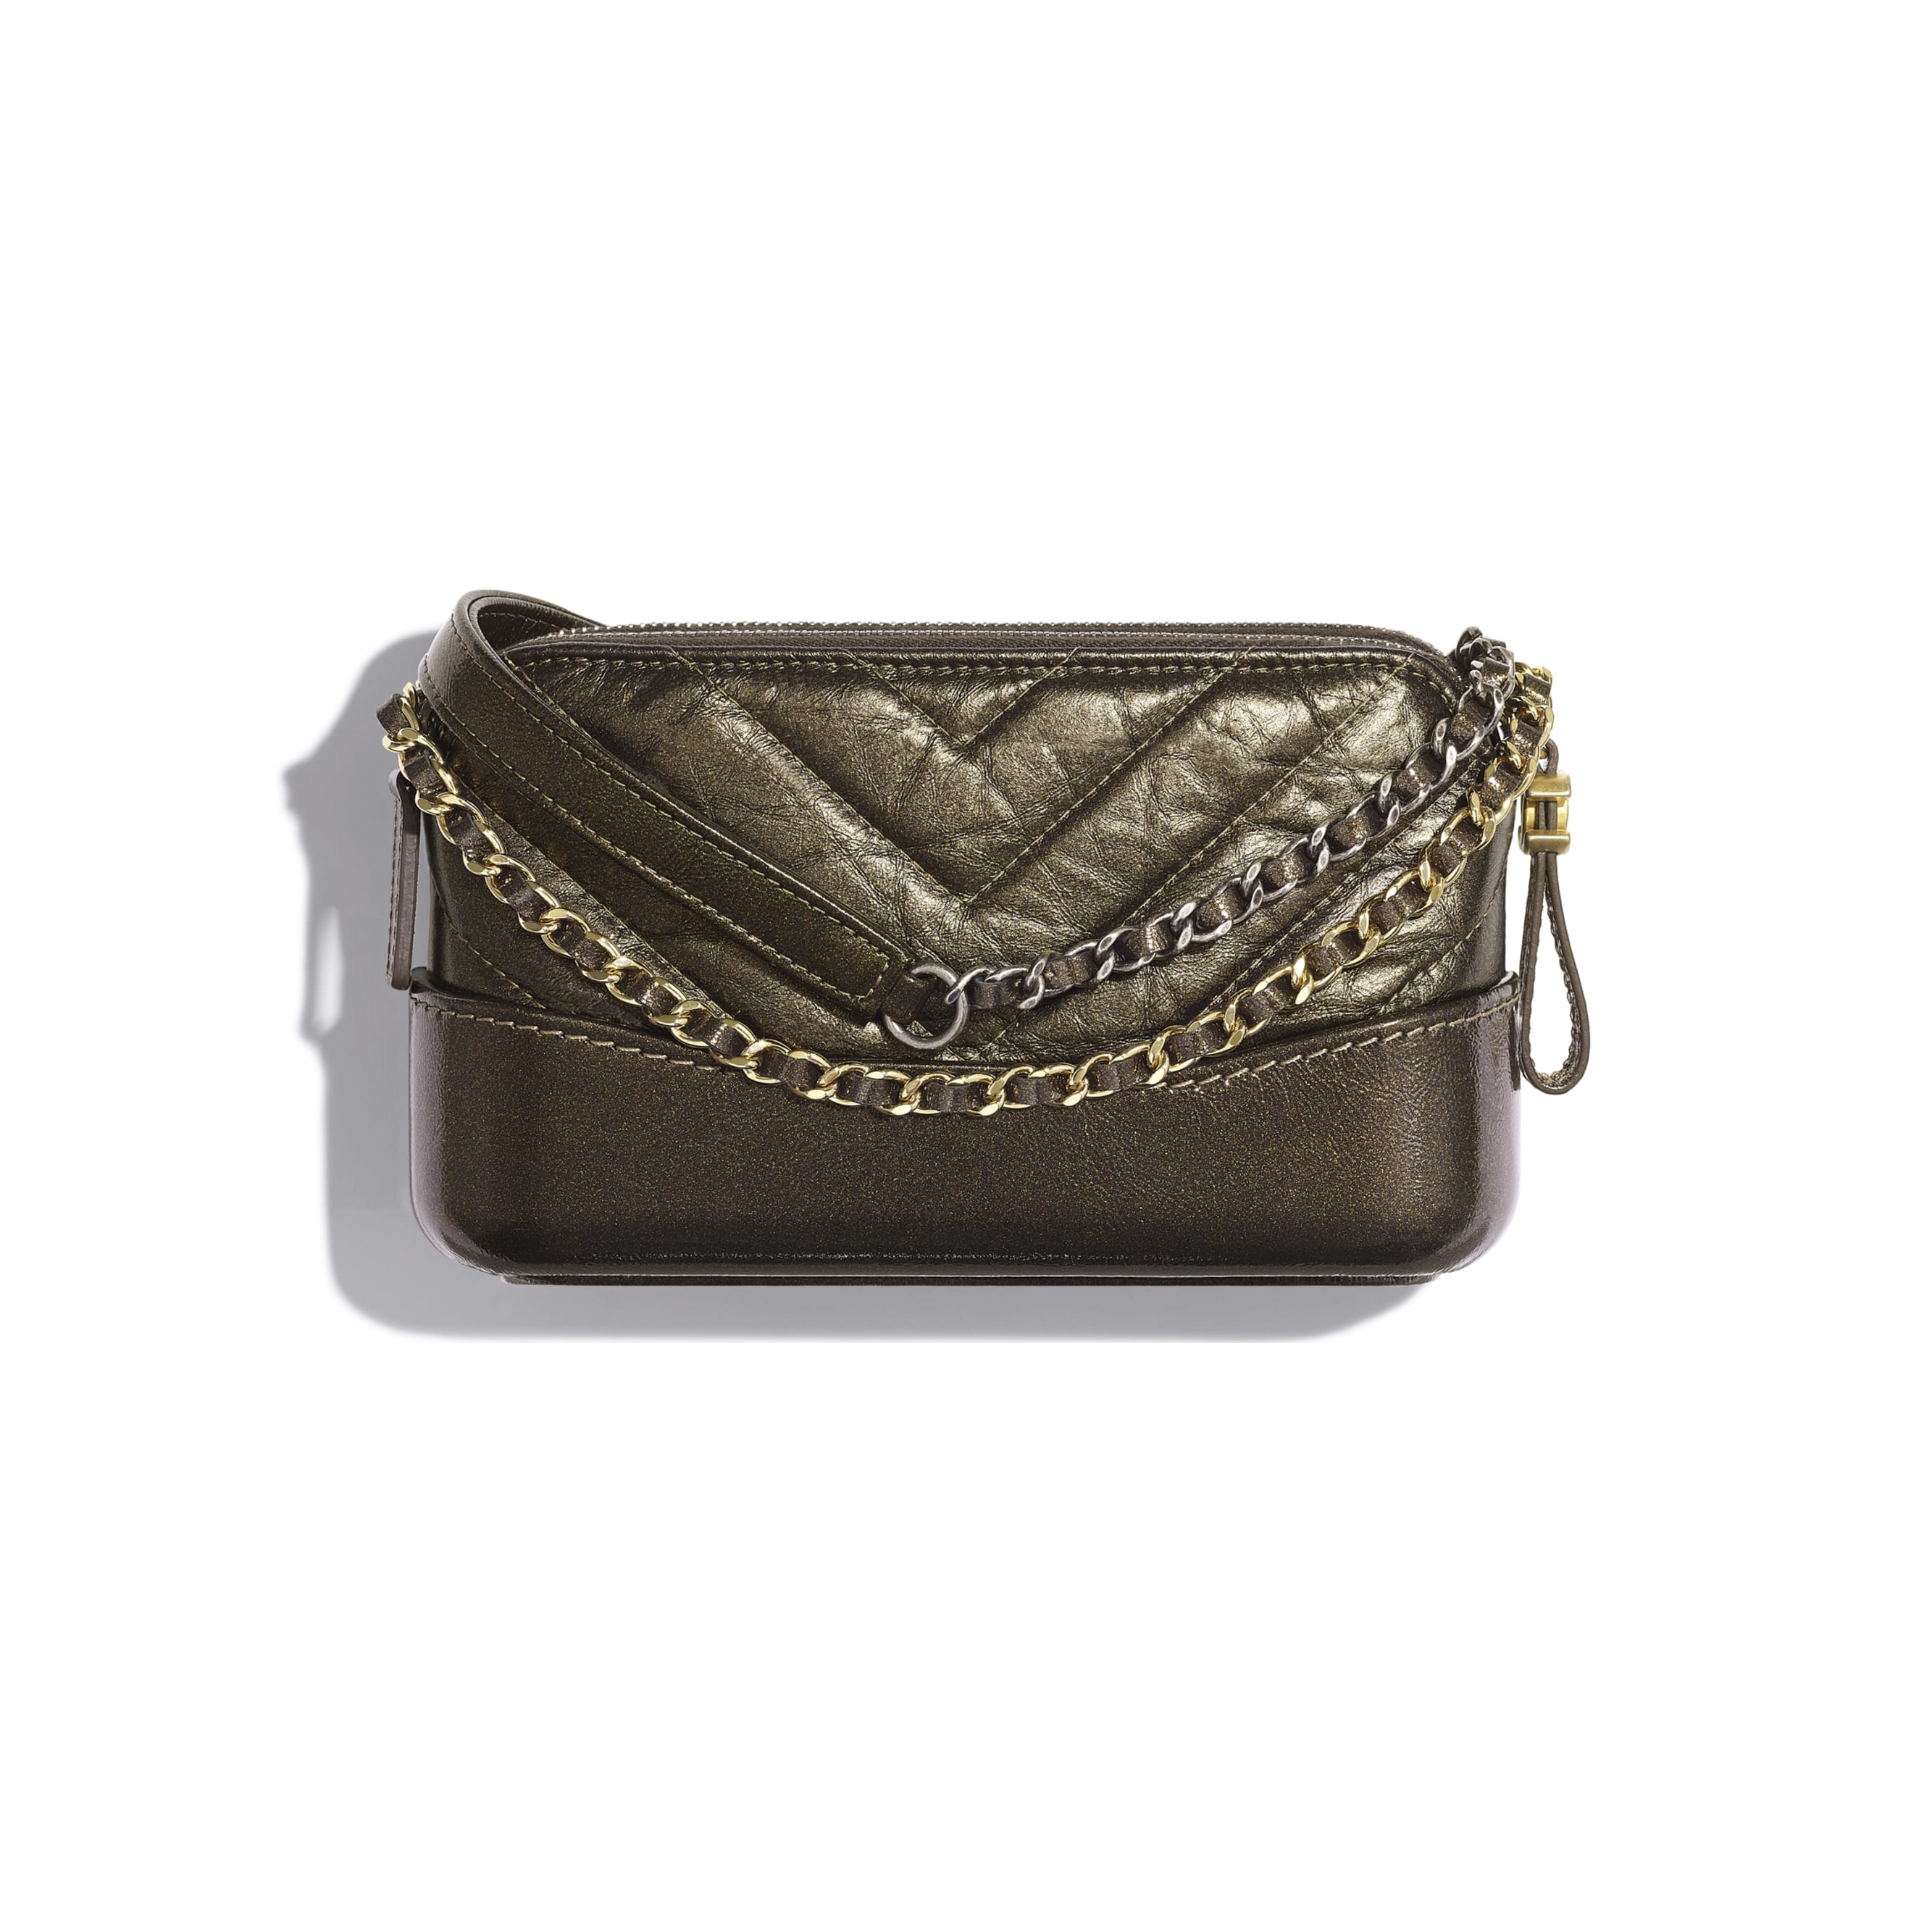 Clutch With Chain - Gold - Glittered Aged Calfskin, Gold-Tone & Silver-Tone Metal - CHANEL - Alternative view - see standard sized version